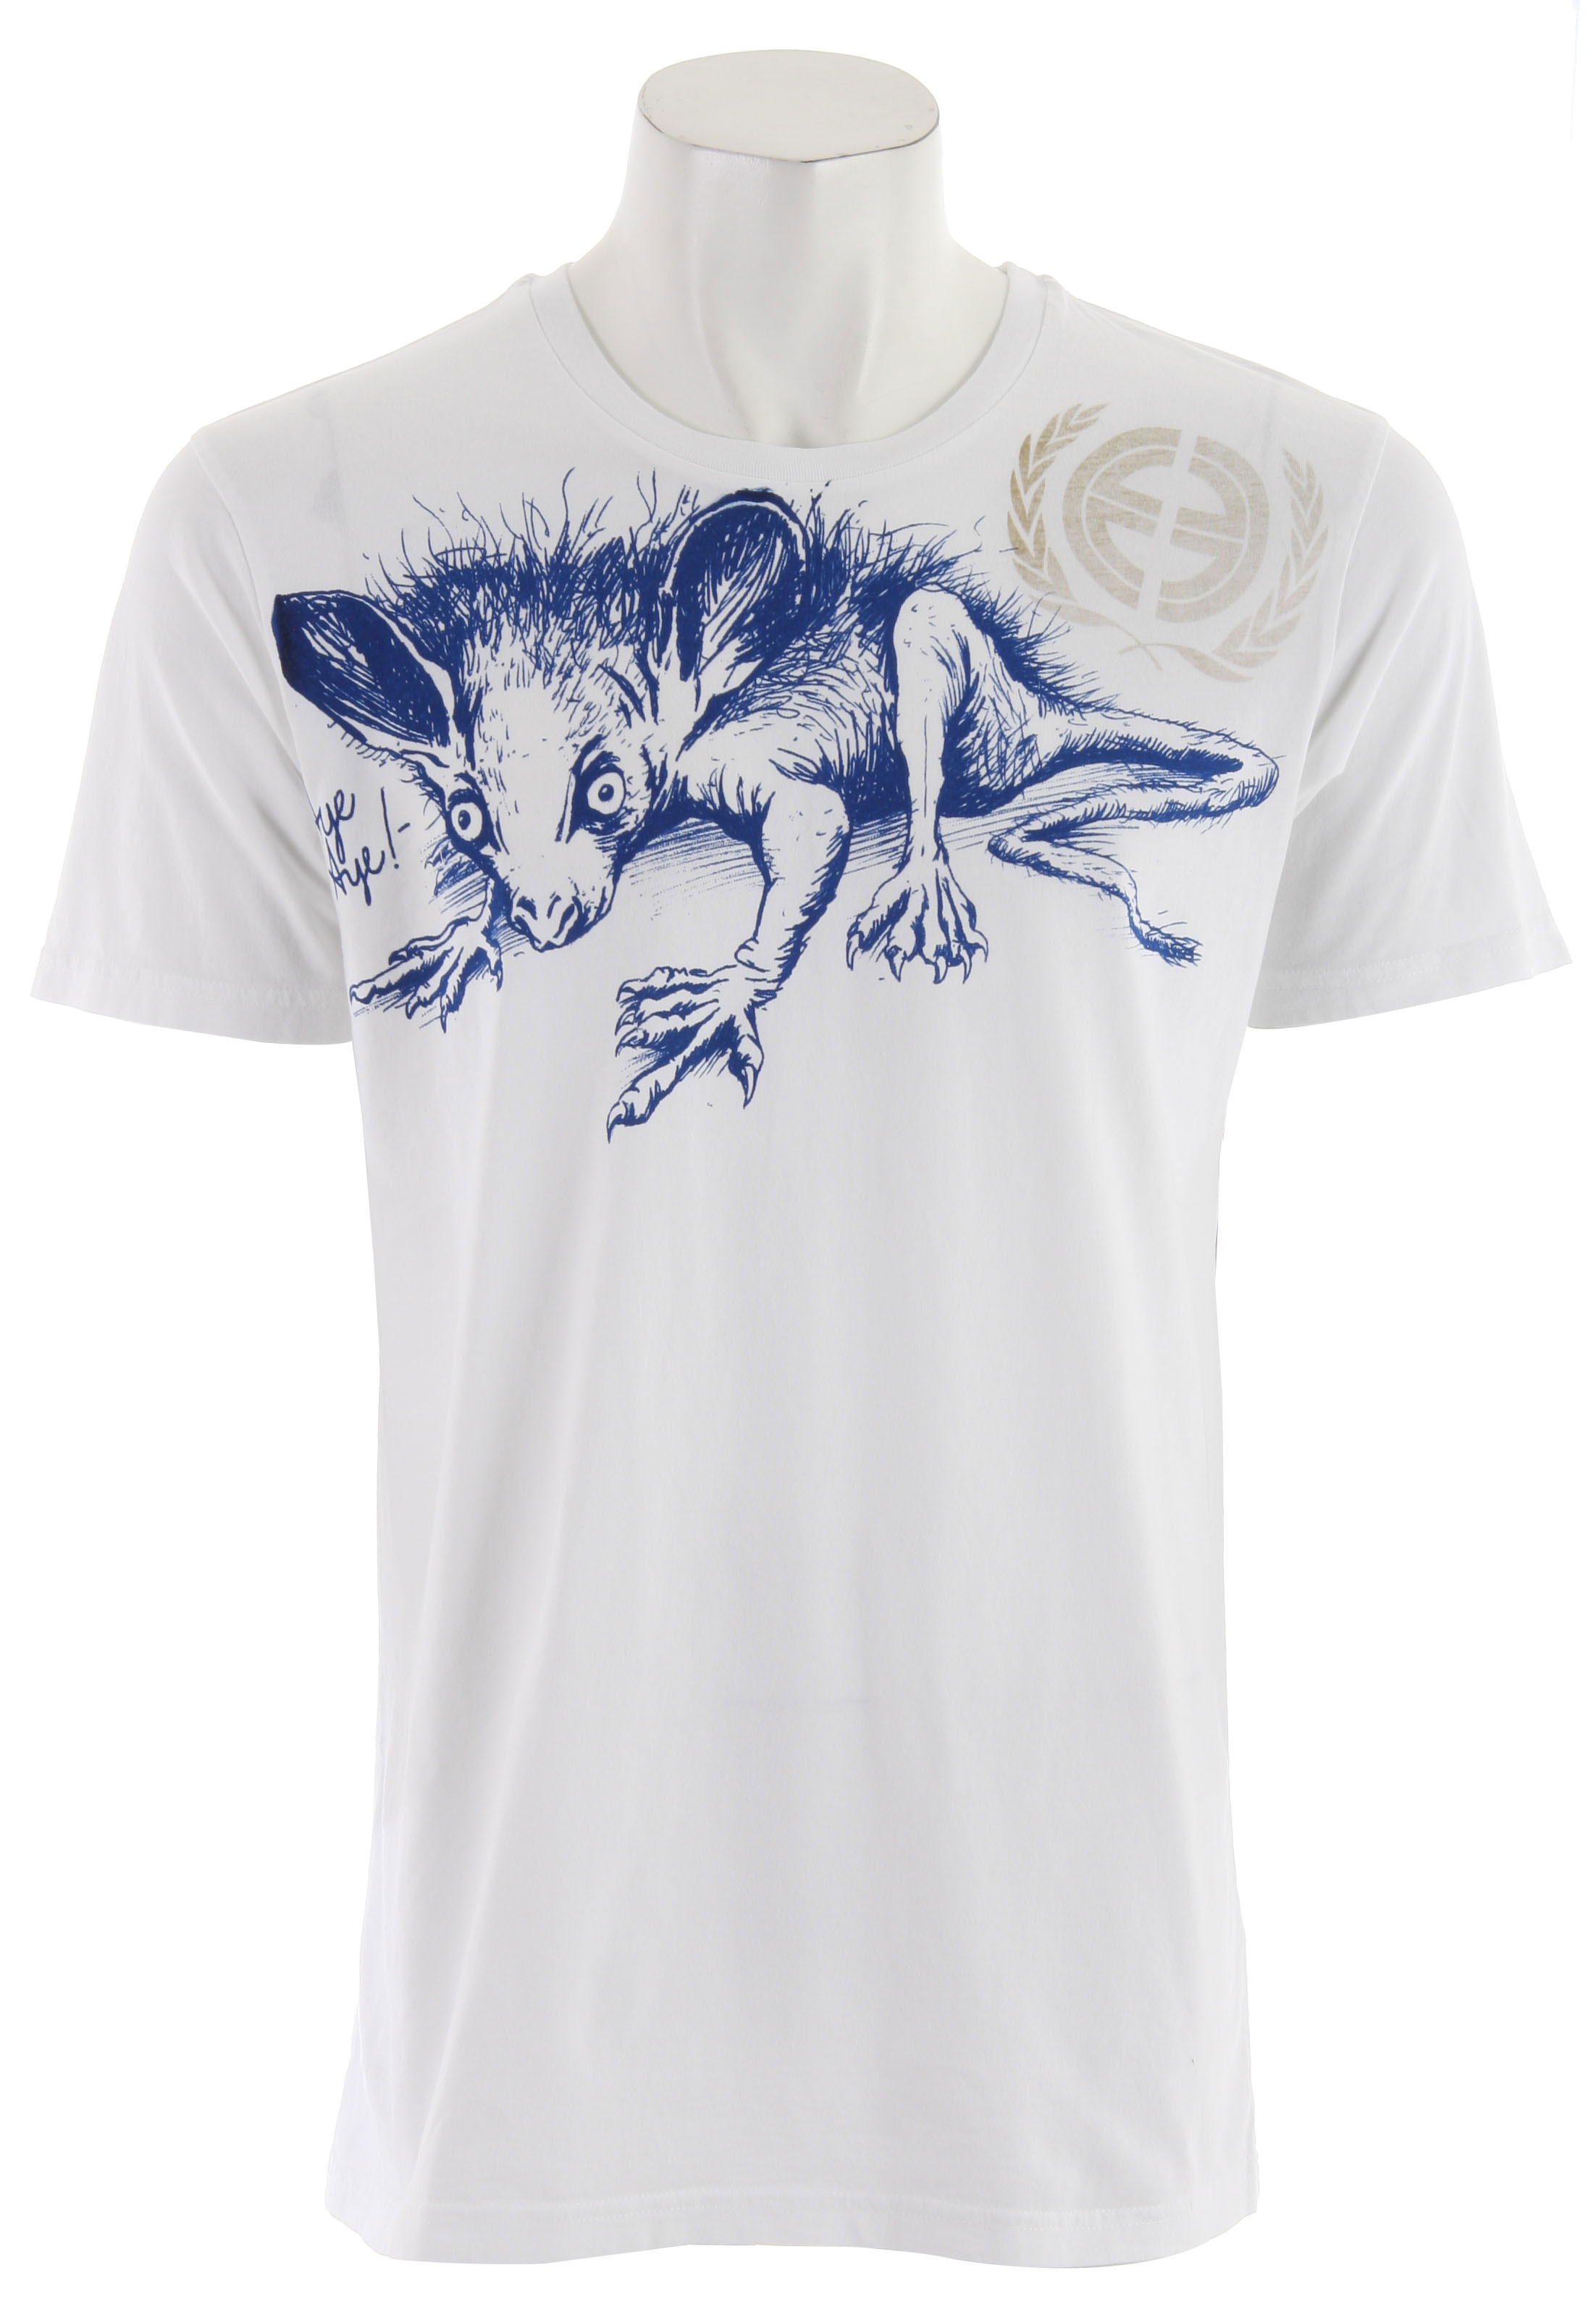 The Aye-Aye is a lemur native to Madagascar with a long, thin middle finger that it uses to pull grubs from trees. The Aye-Aye is an endangered species, partly due to superstition as ancient legend said it was a symbol of death. We mostly think it's fun. Enjoy the Aye-Aye!All tees are 51% organic cotton blended with 49% virgin cotton and embellished with formaldehyde-free inks and dyes for an environmentally friendly finished product. - $7.95